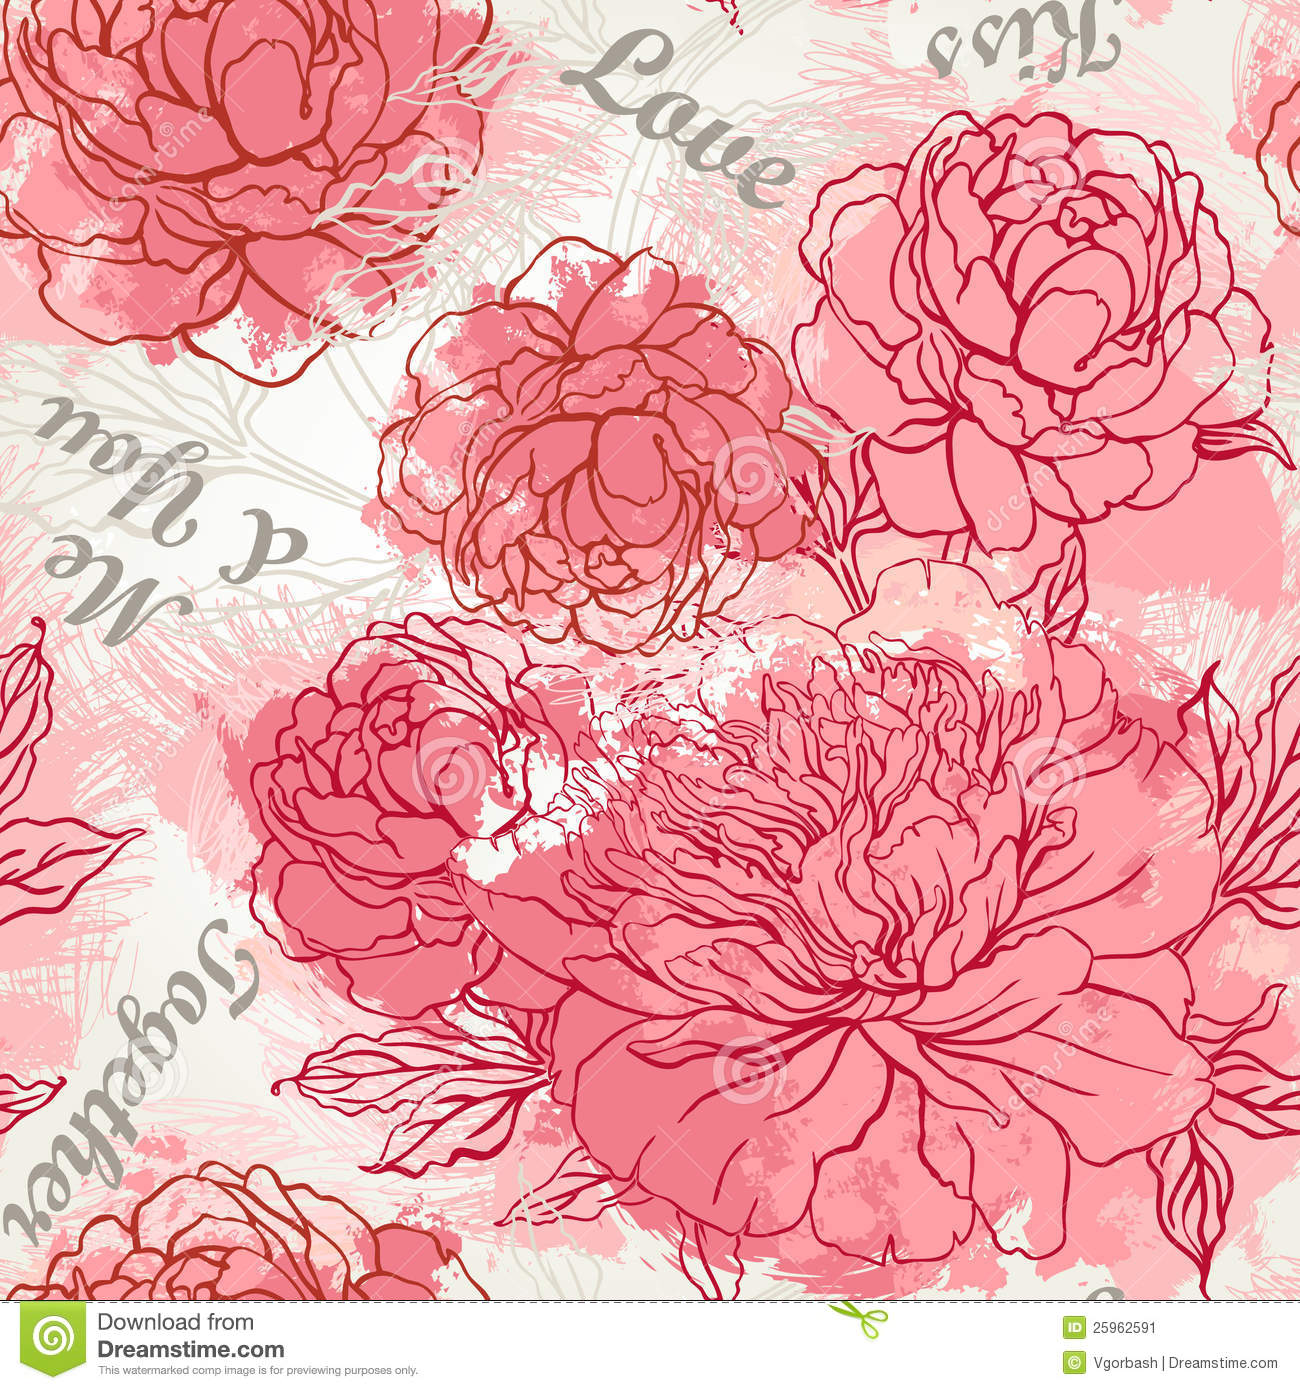 Peony flower isolated on white stock vector 368014568 shutterstock - Peony Flower Pattern Stock Image 23892711 1300x990 Beautiful